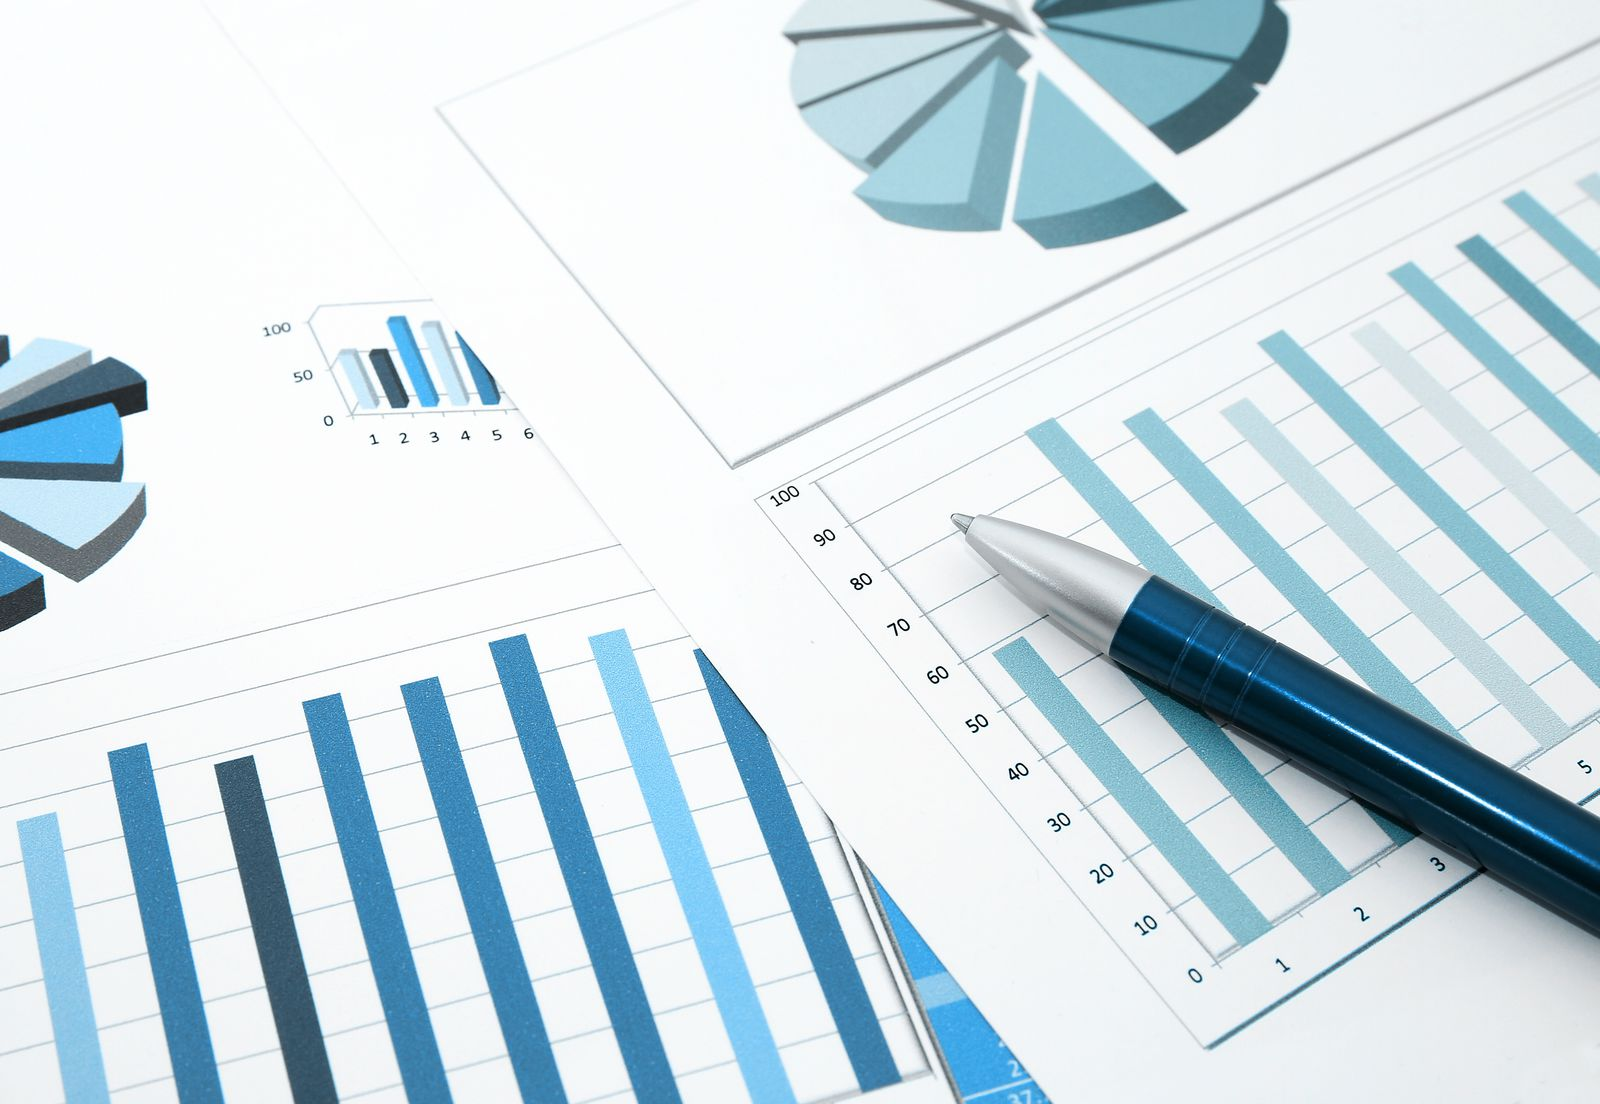 Table charts with data and statistics